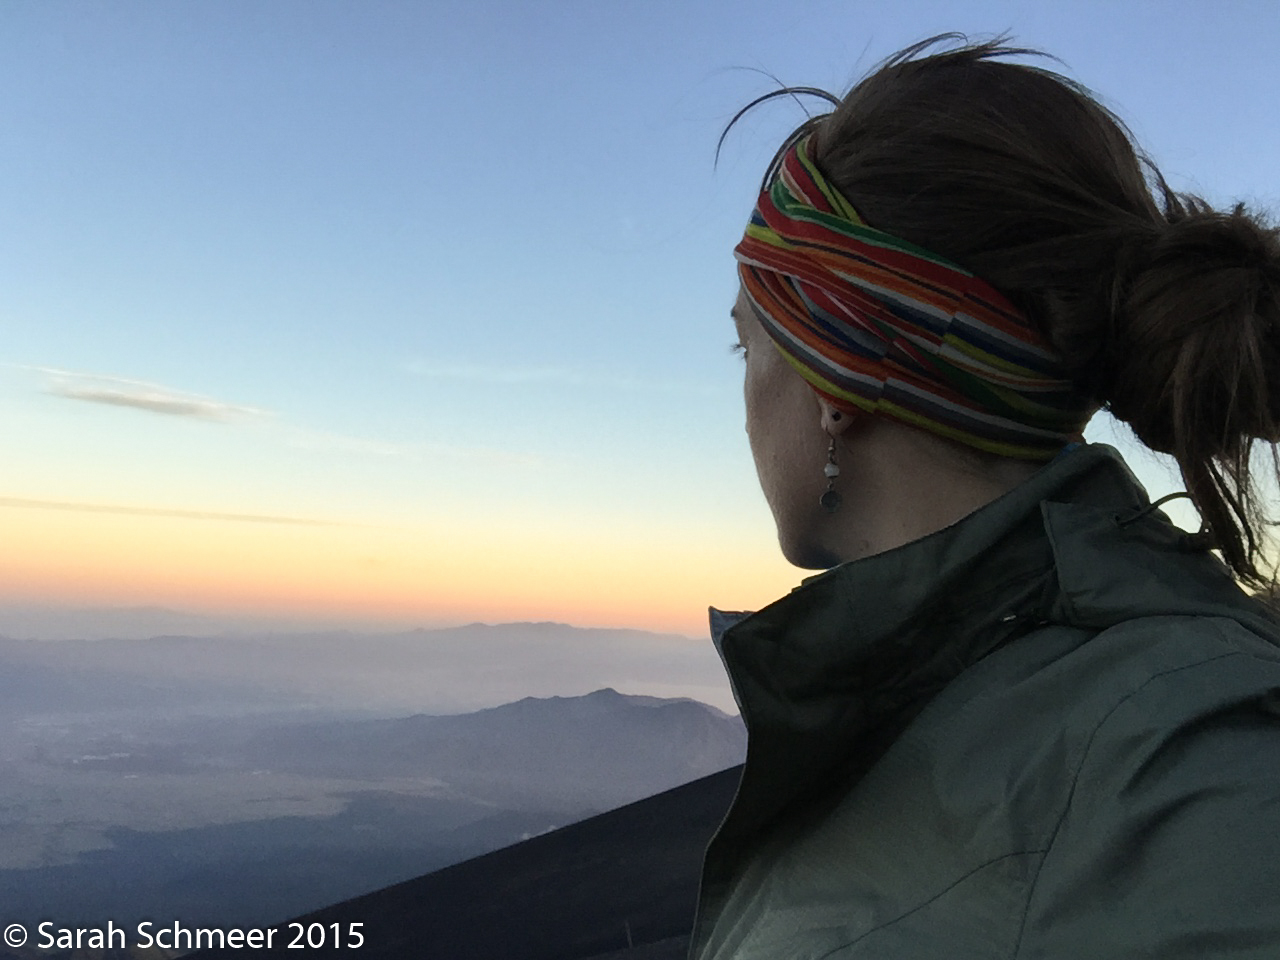 Gazing out over the sea of clouds at sunset from my campsite halfway up Fuji's Gotemba trail.